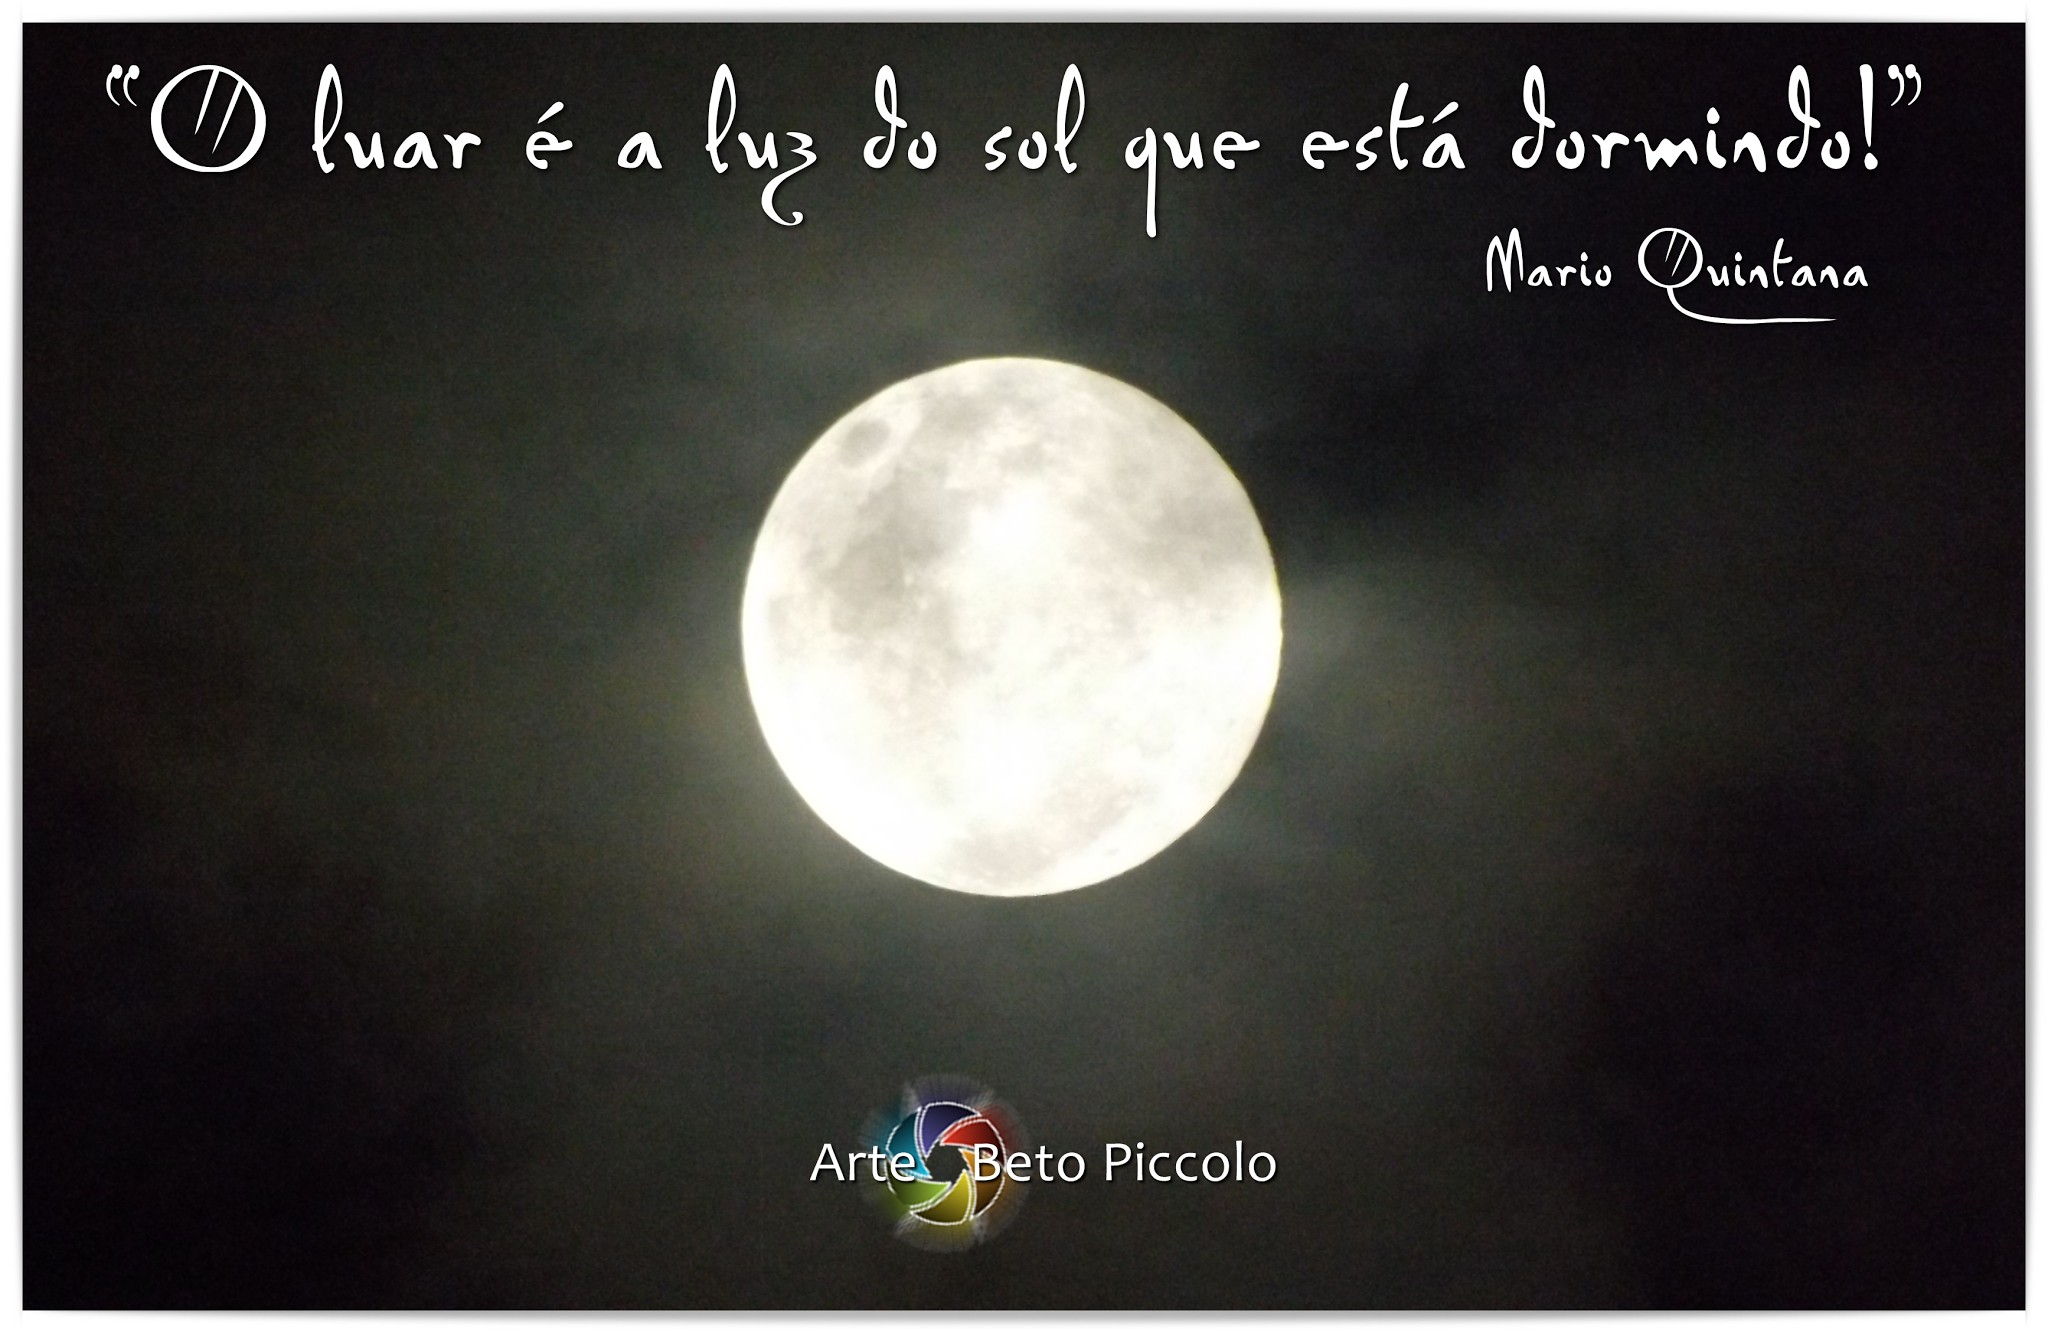 Frases De Romero Britto 3 Quotes Links